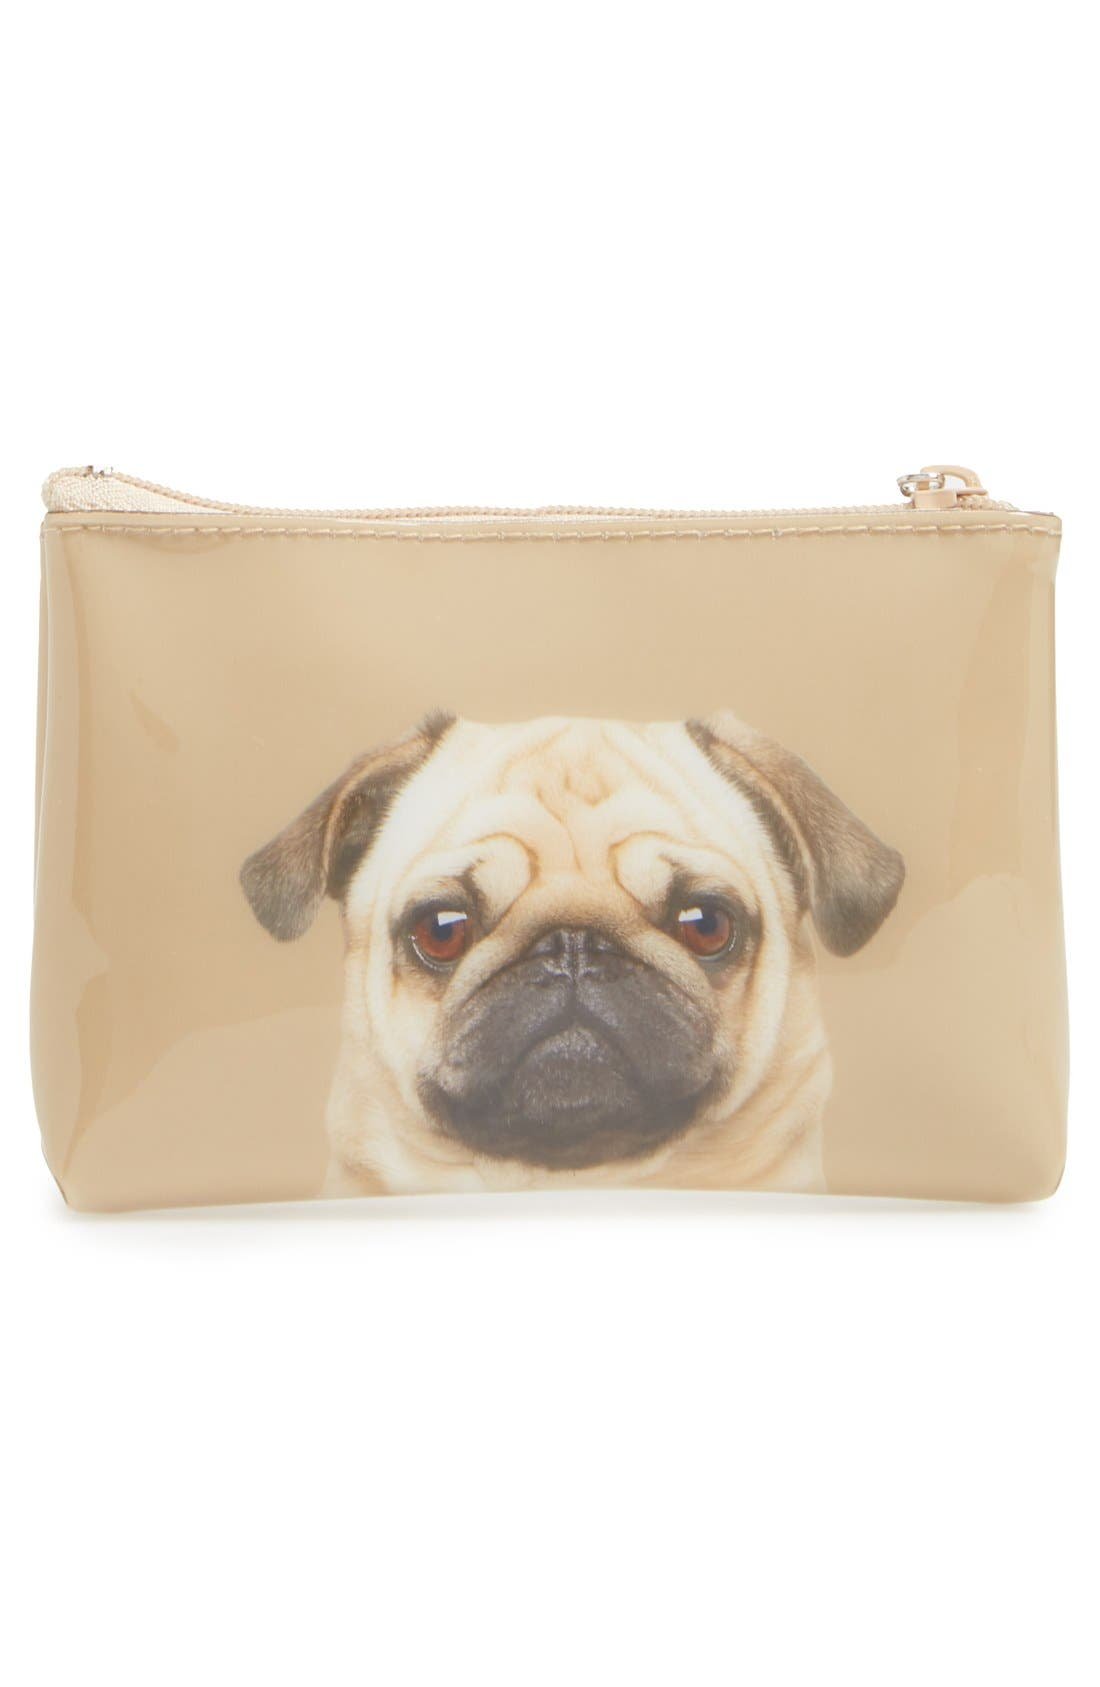 Caramel Pug Small Zip Pouch,                             Alternate thumbnail 6, color,